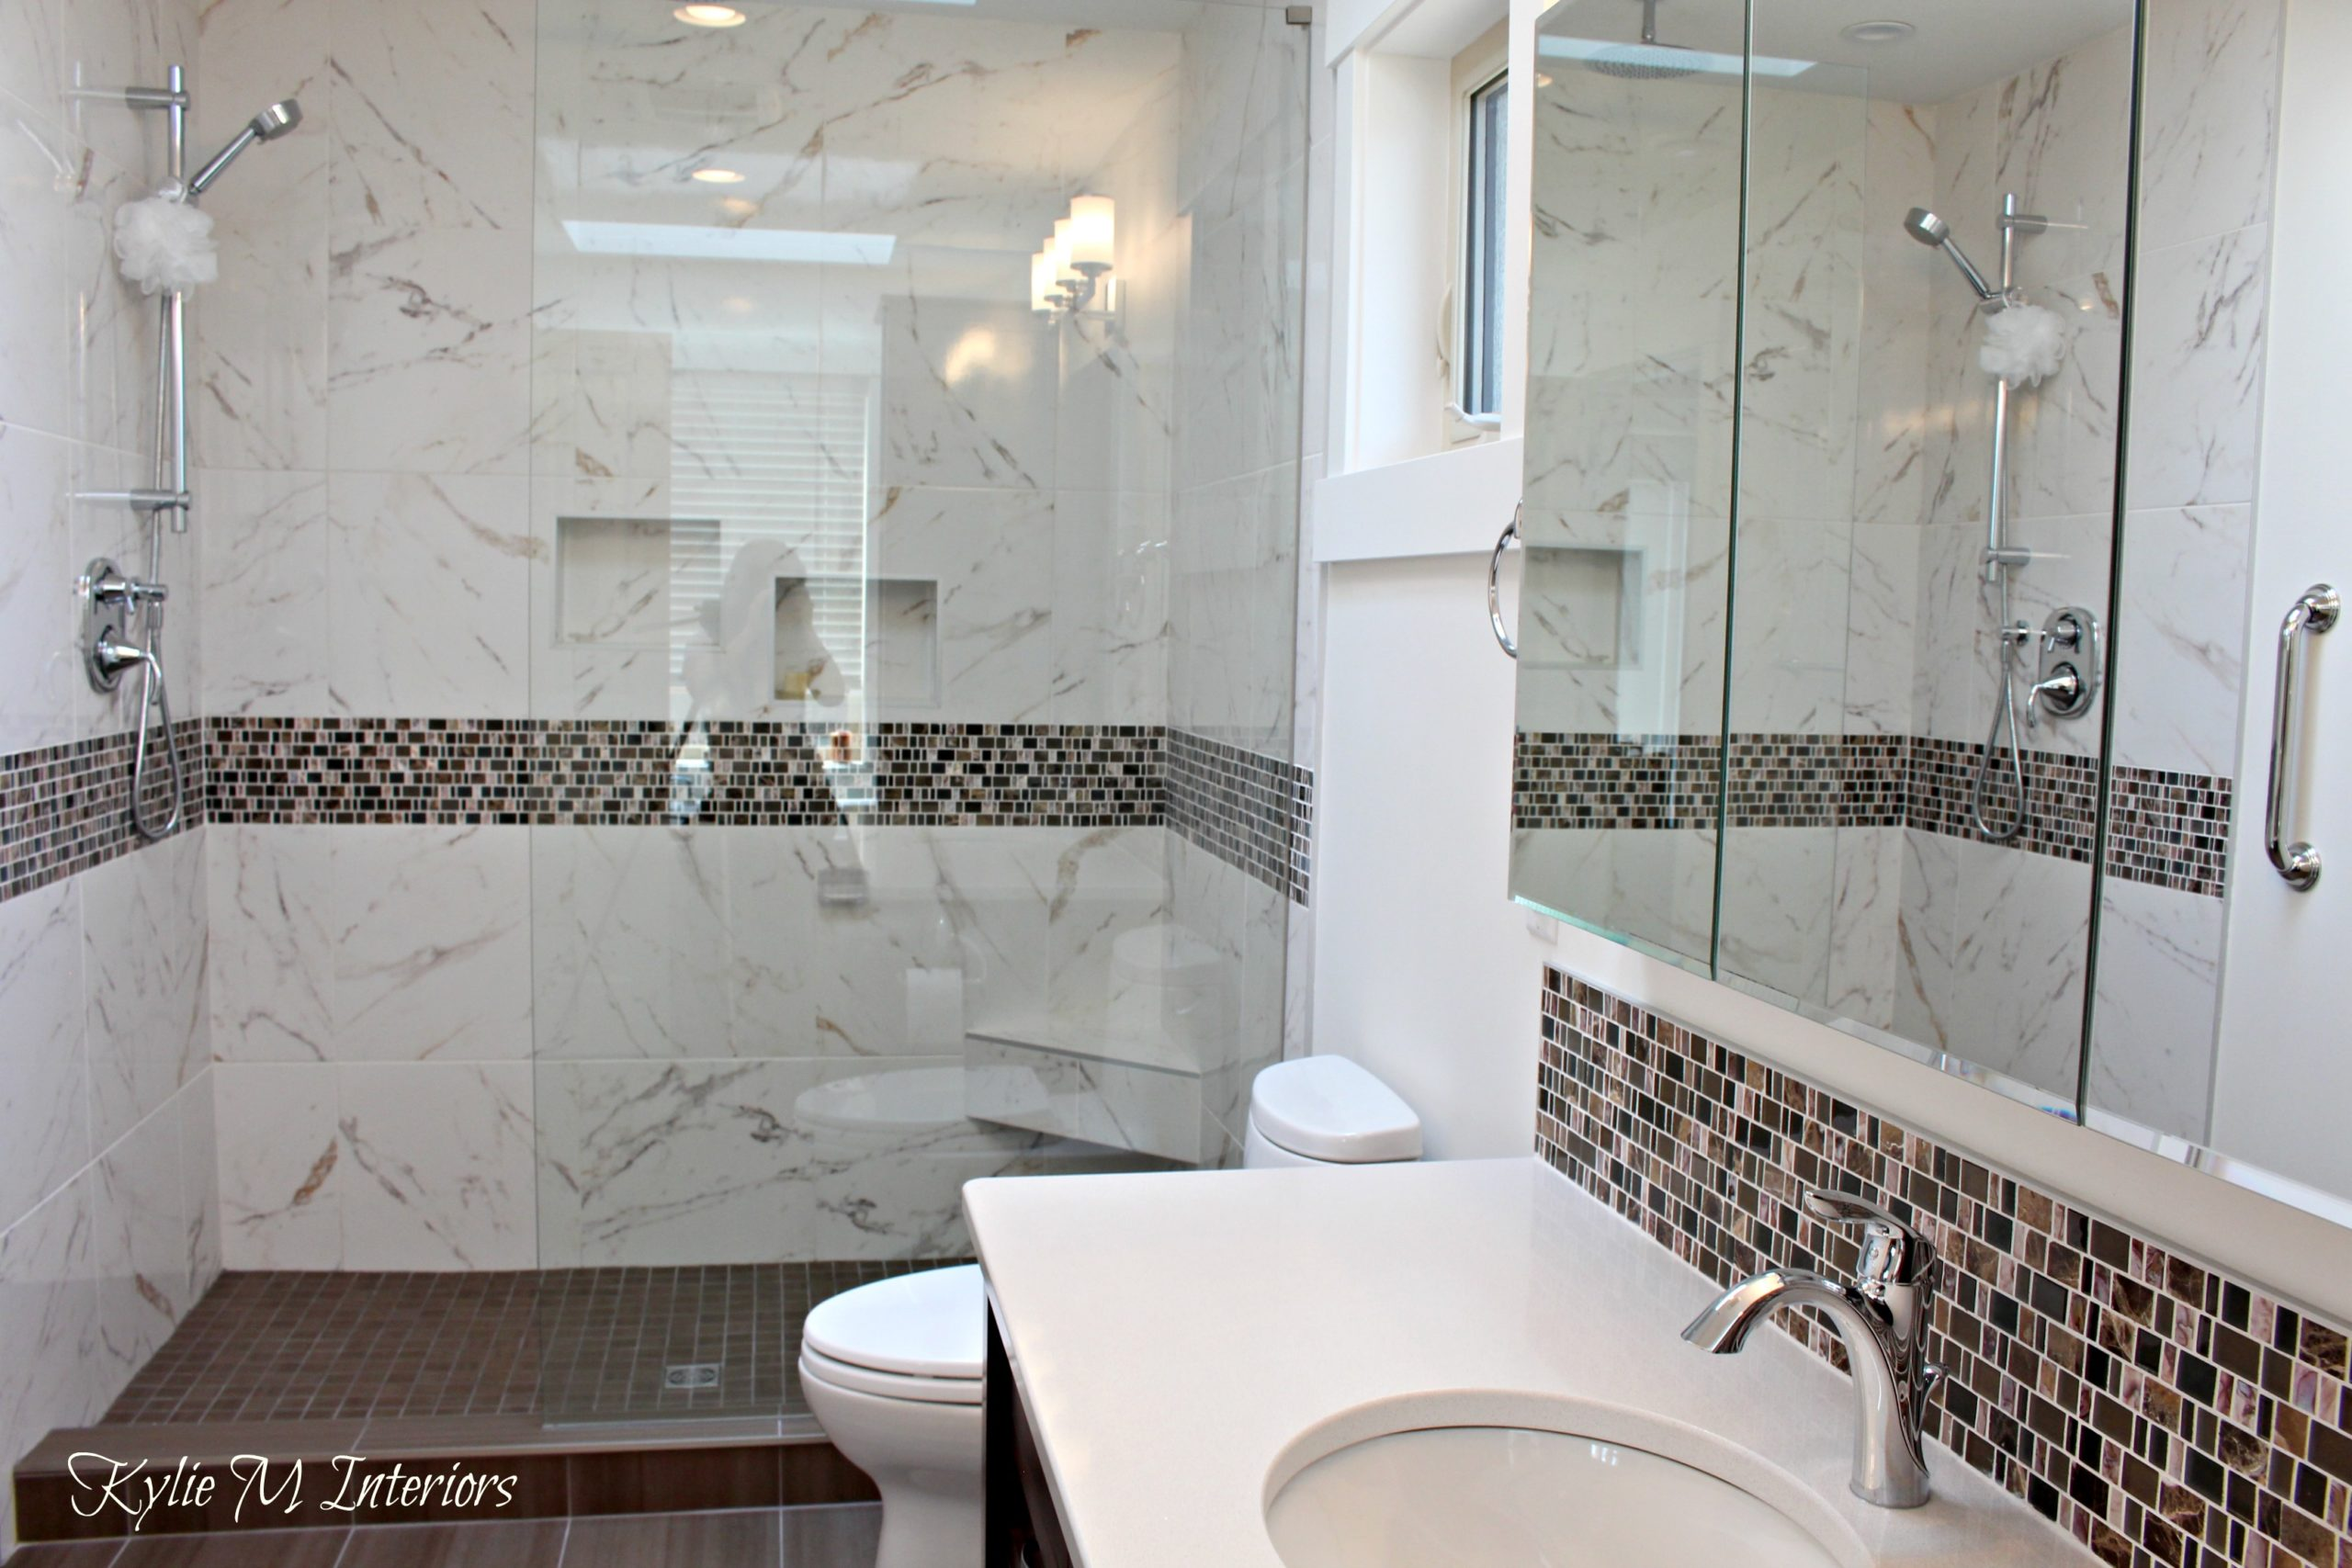 Mosaic Tile Shower: Walk In Shower In Bathroom With Pink And Brown Mosaic Tile